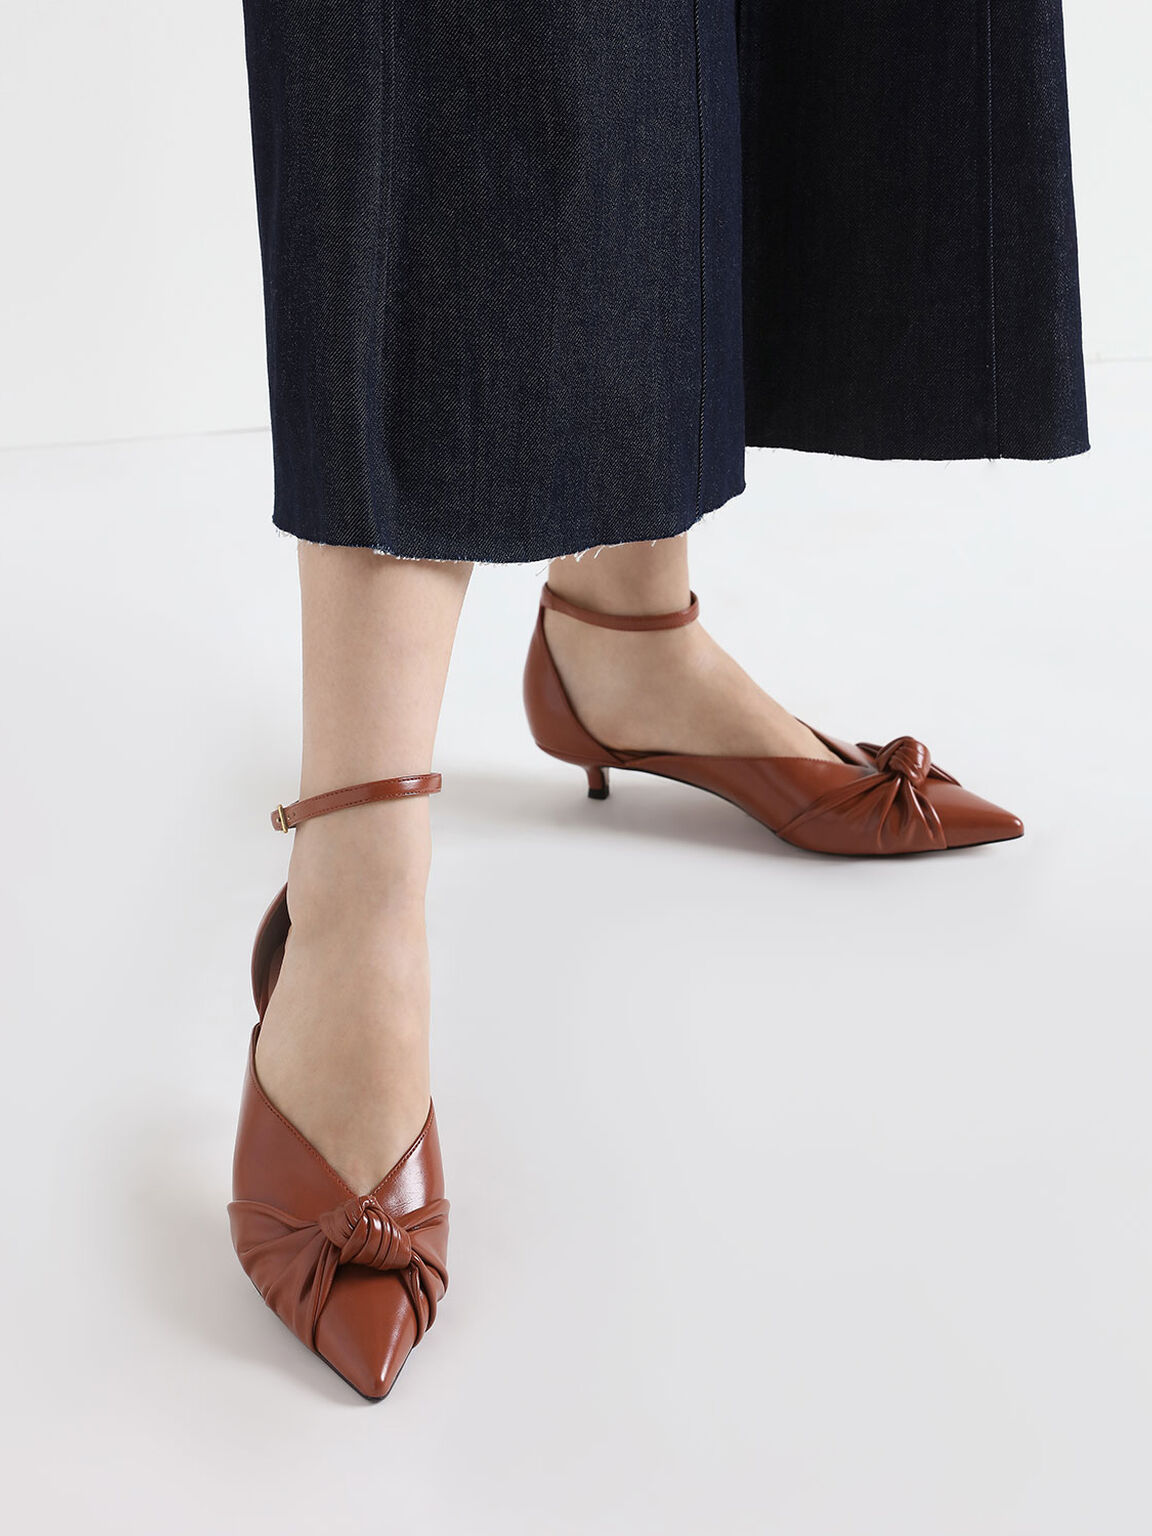 Knotted Kitten Heel Pumps, Brick, hi-res